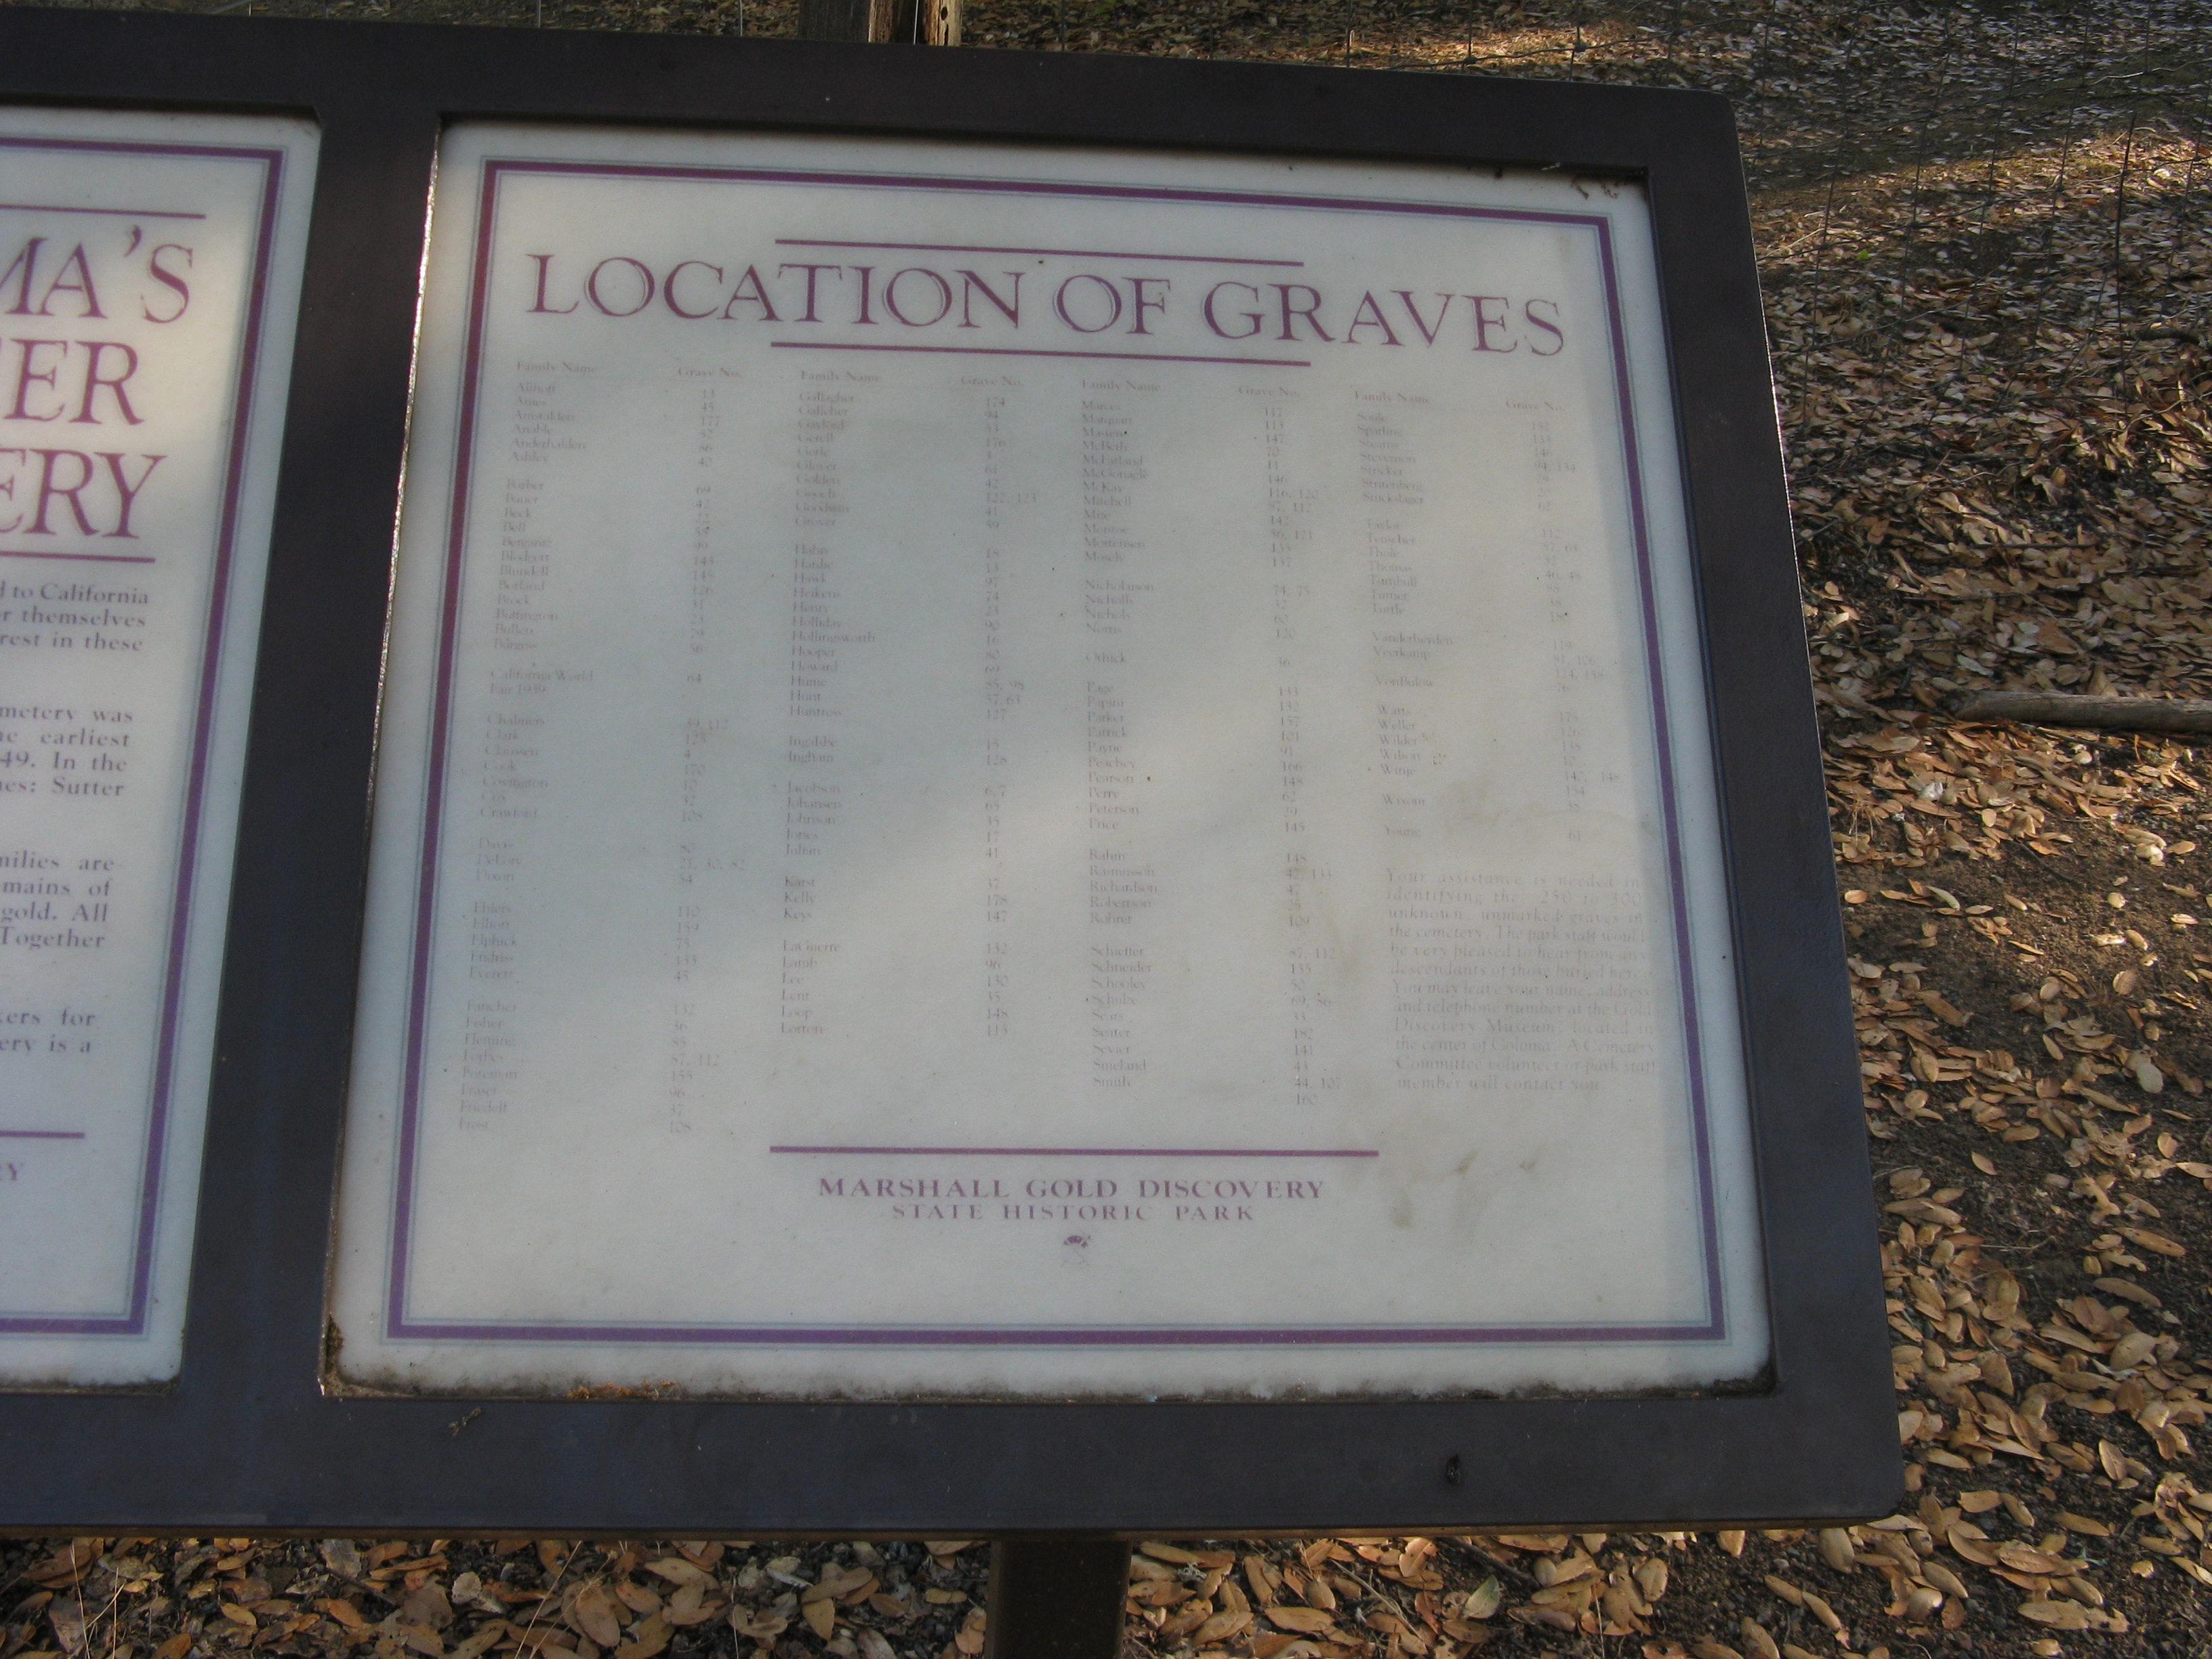 Location of Graves